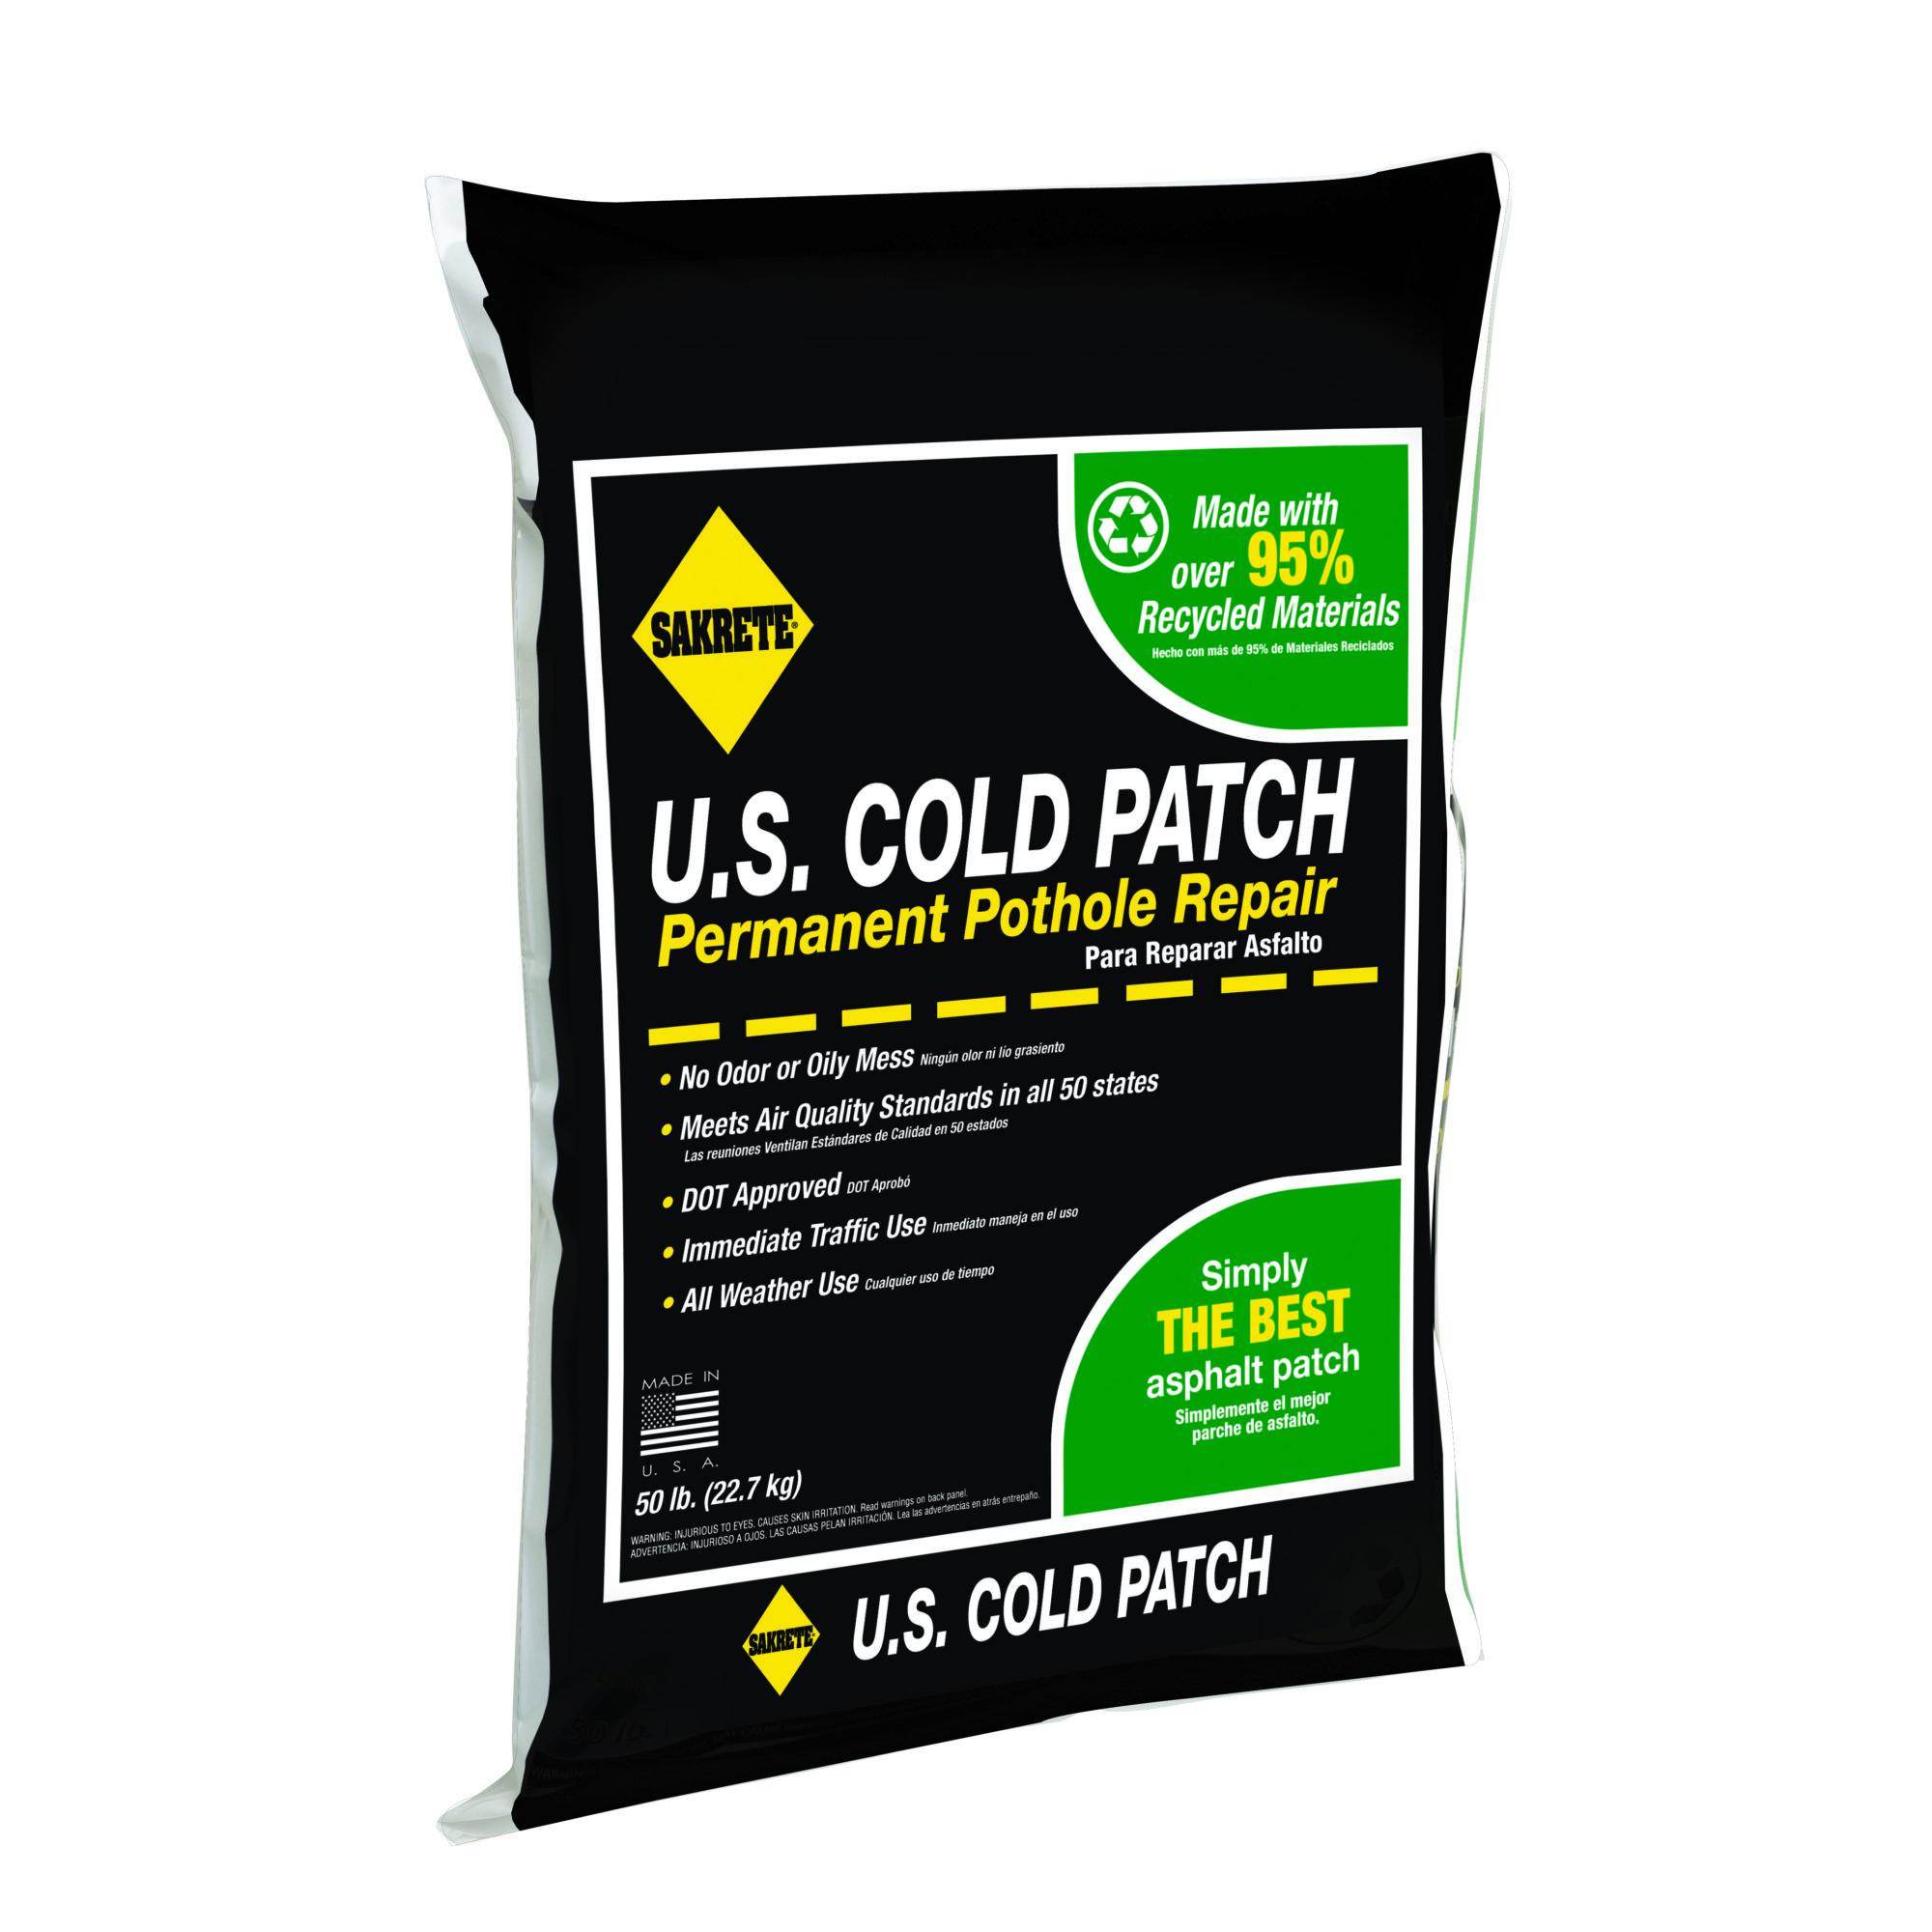 COLD PATCH